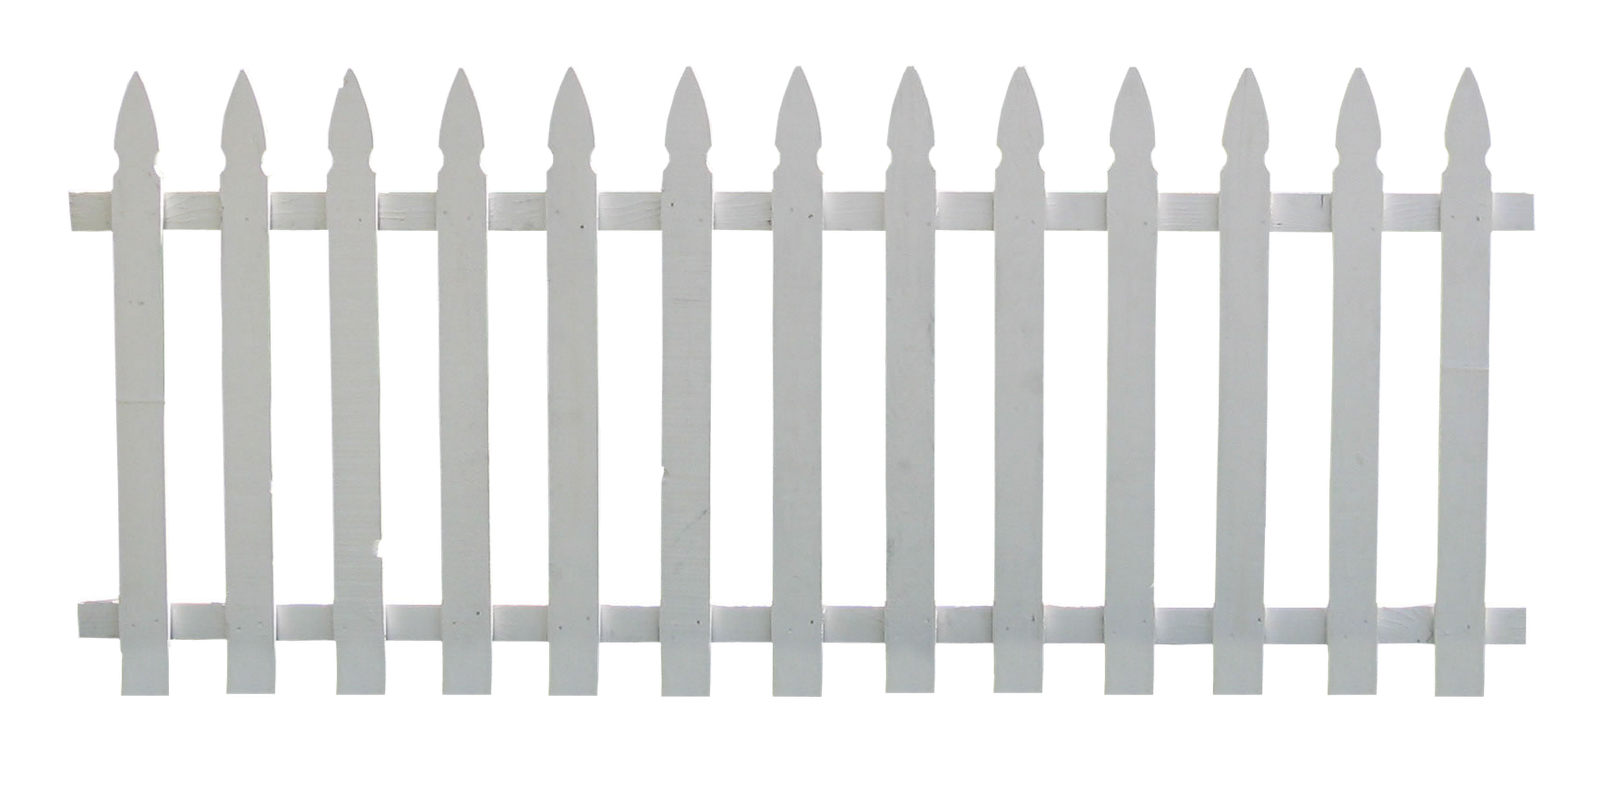 White picket fence clipart vector transparent library Pin by Krista Schmitz on Relief society activities | Fence ... vector transparent library